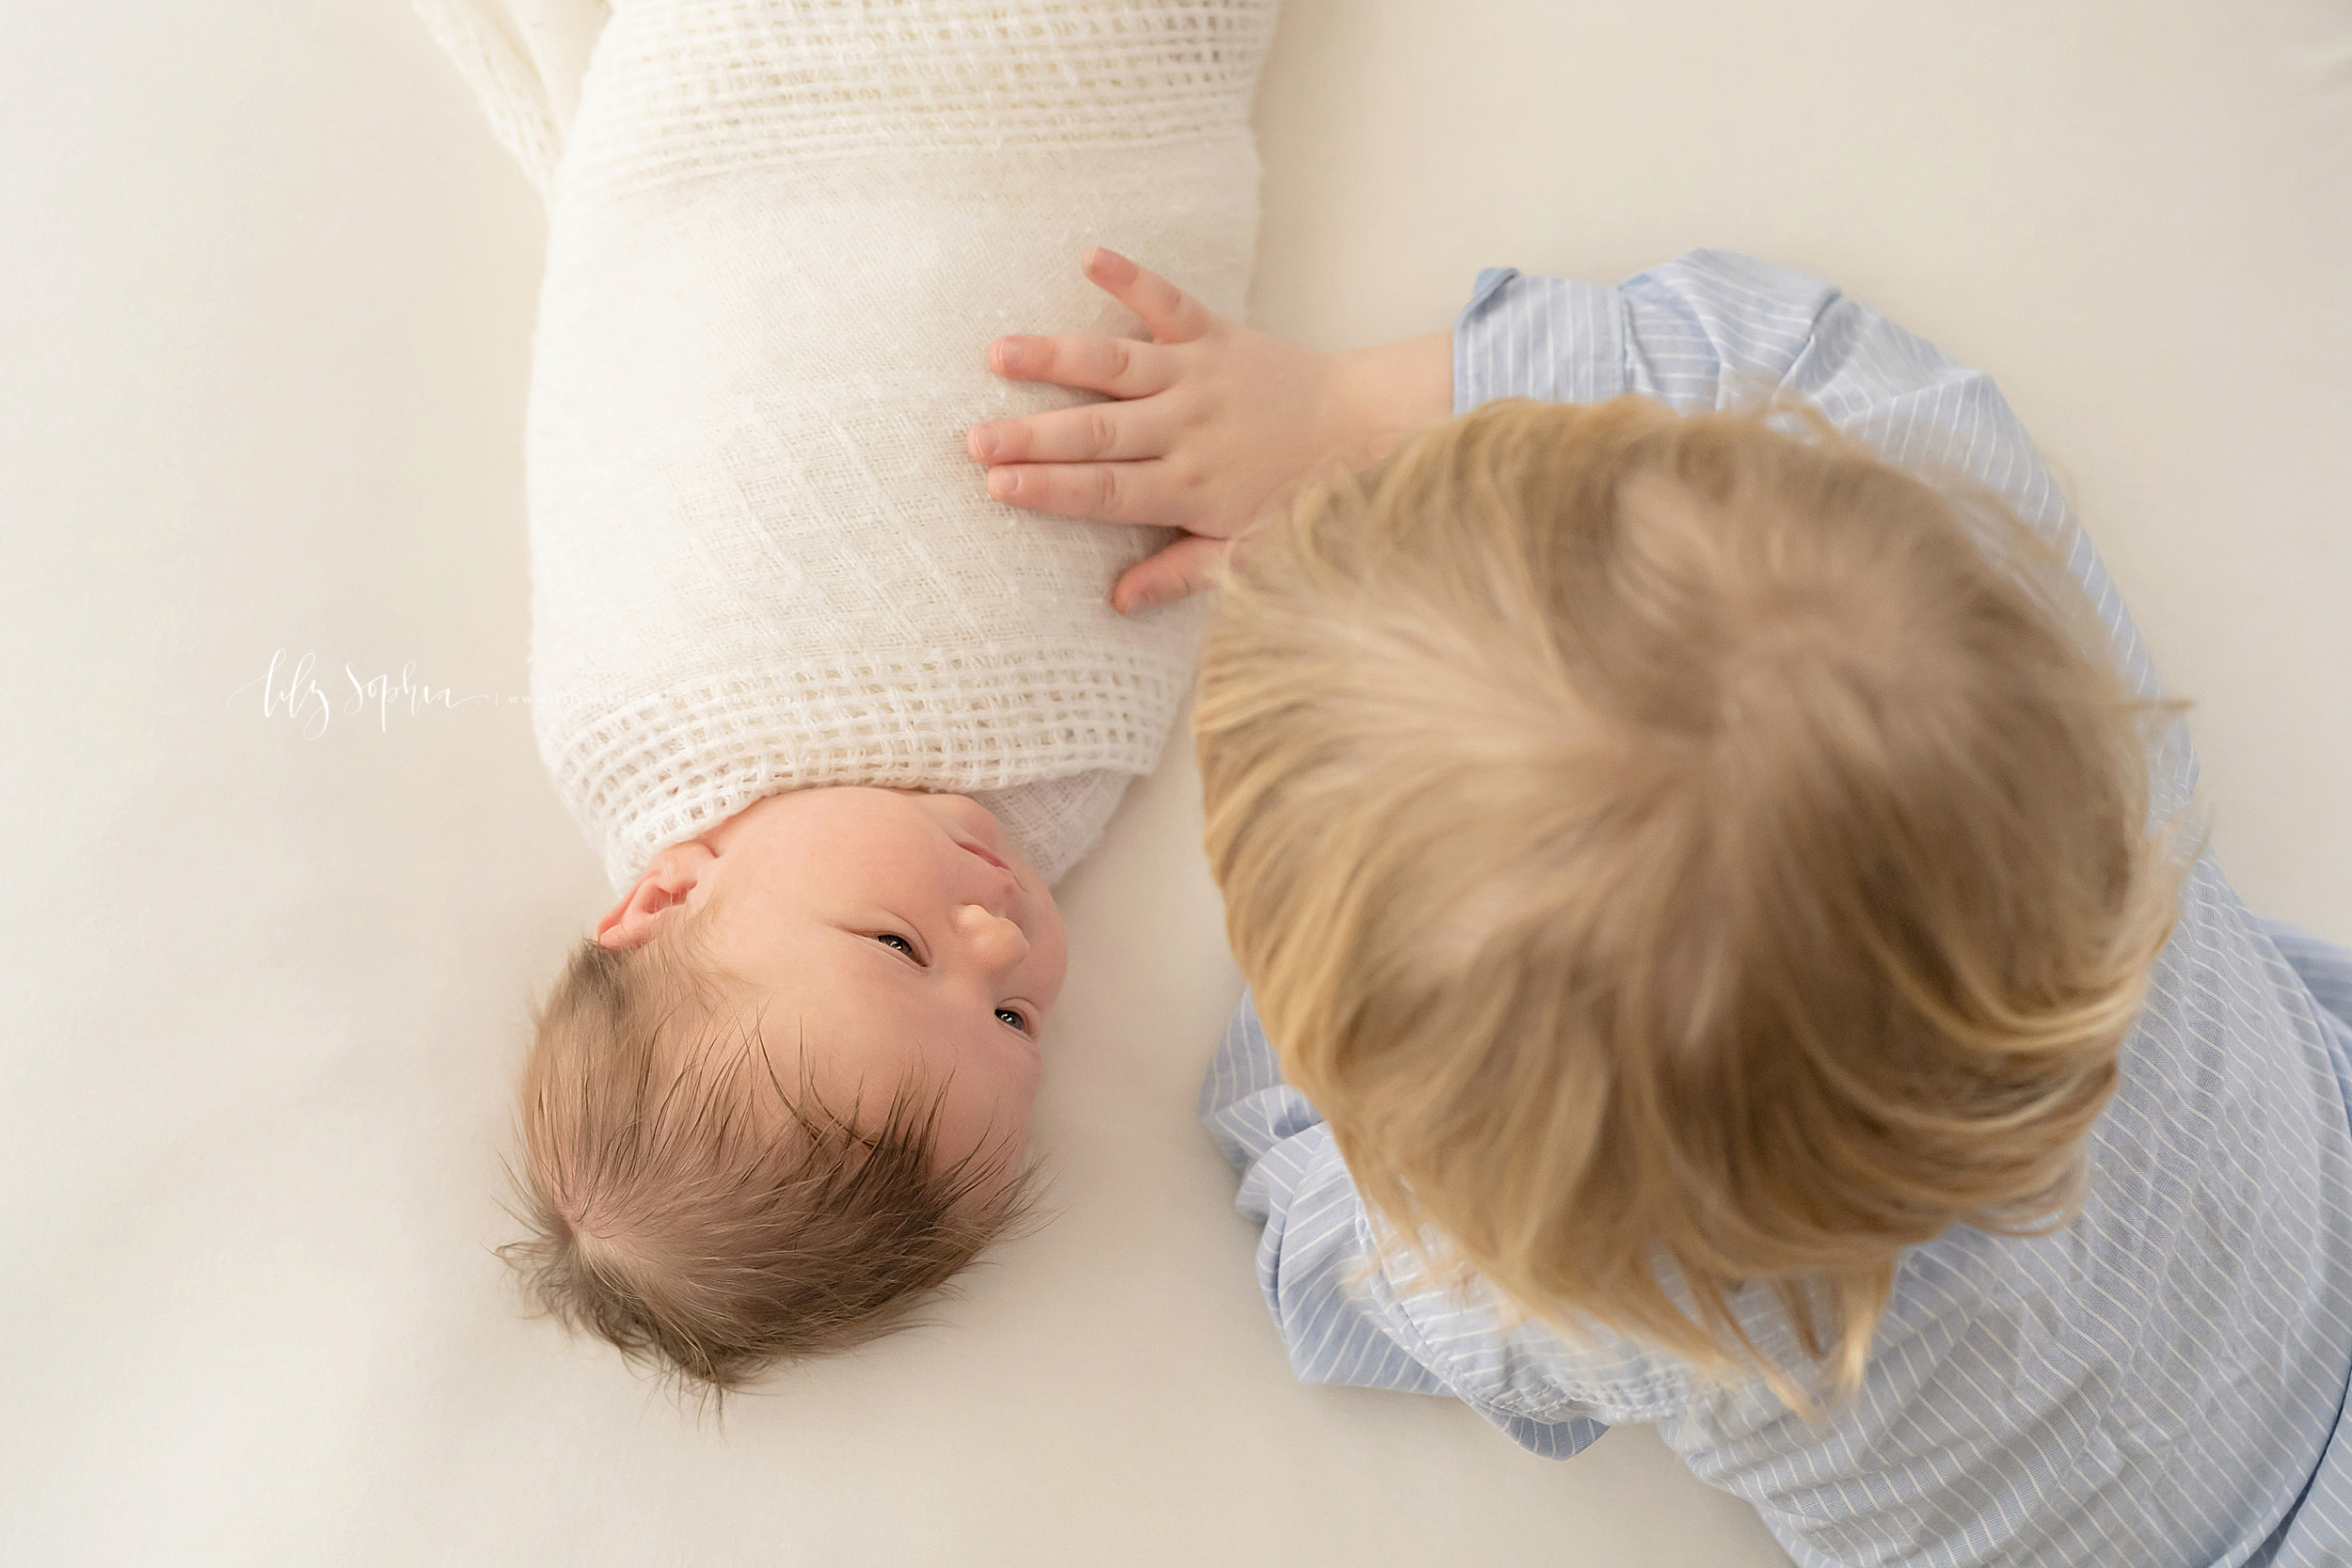 Aerial image of two brothers. The older blonde haired brother is putting his hand on his brown haired newborn brother who is wrapped in a soft swaddle blanket.  The infant is looking up with bright eyes at his brother.